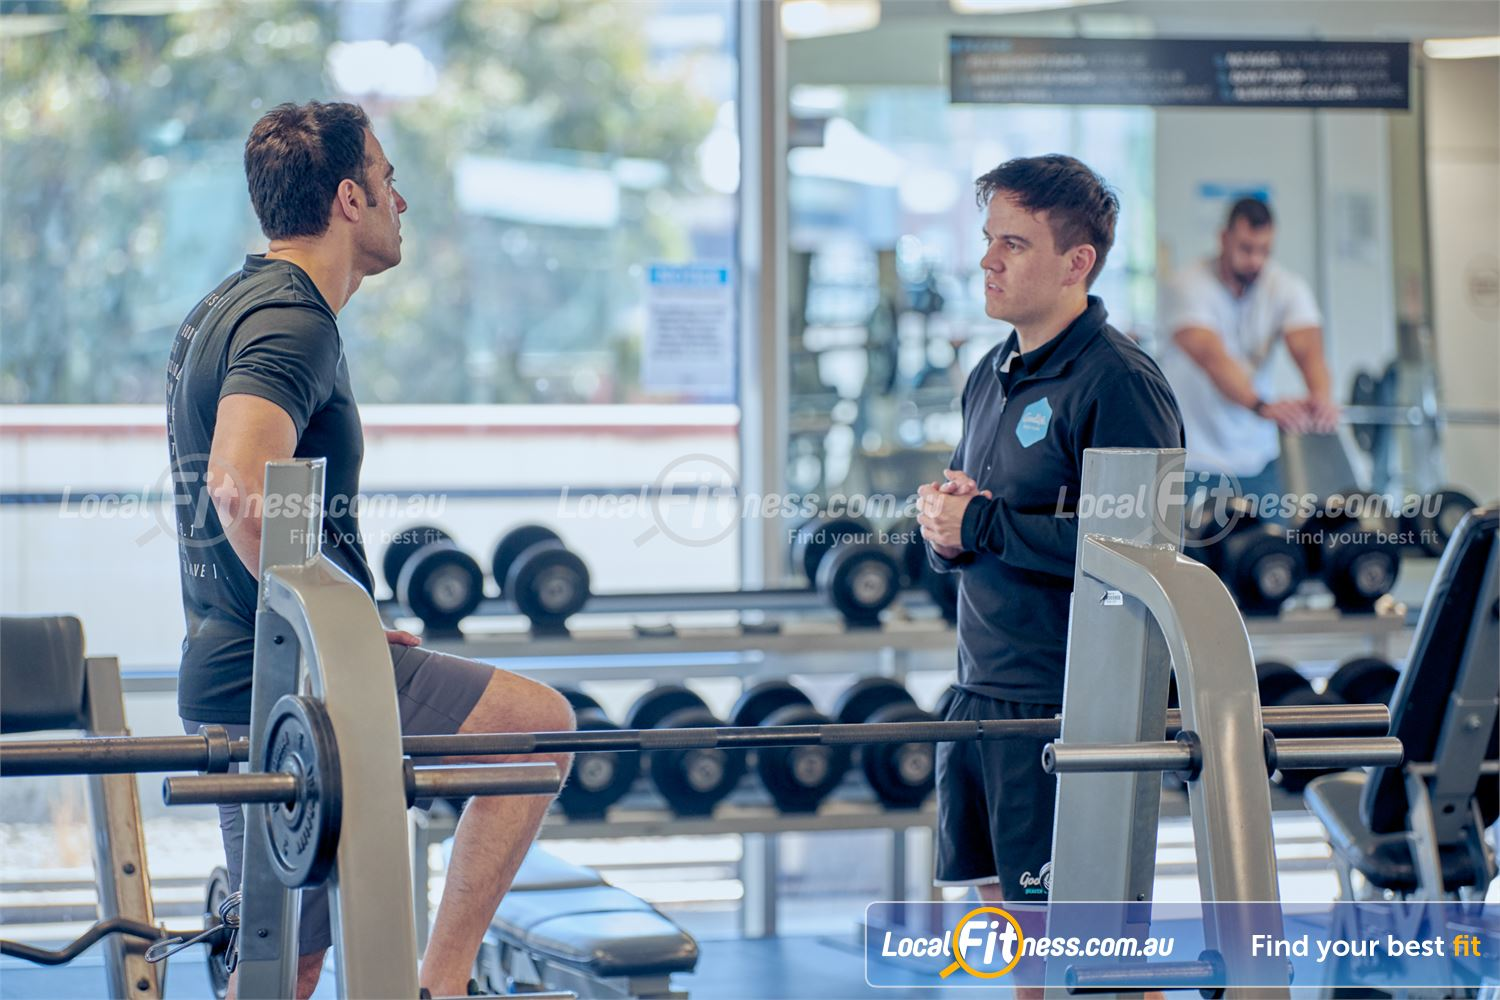 Goodlife Health Clubs Near Glen Iris Our Camberwell gym team can help you with your strength training goals.